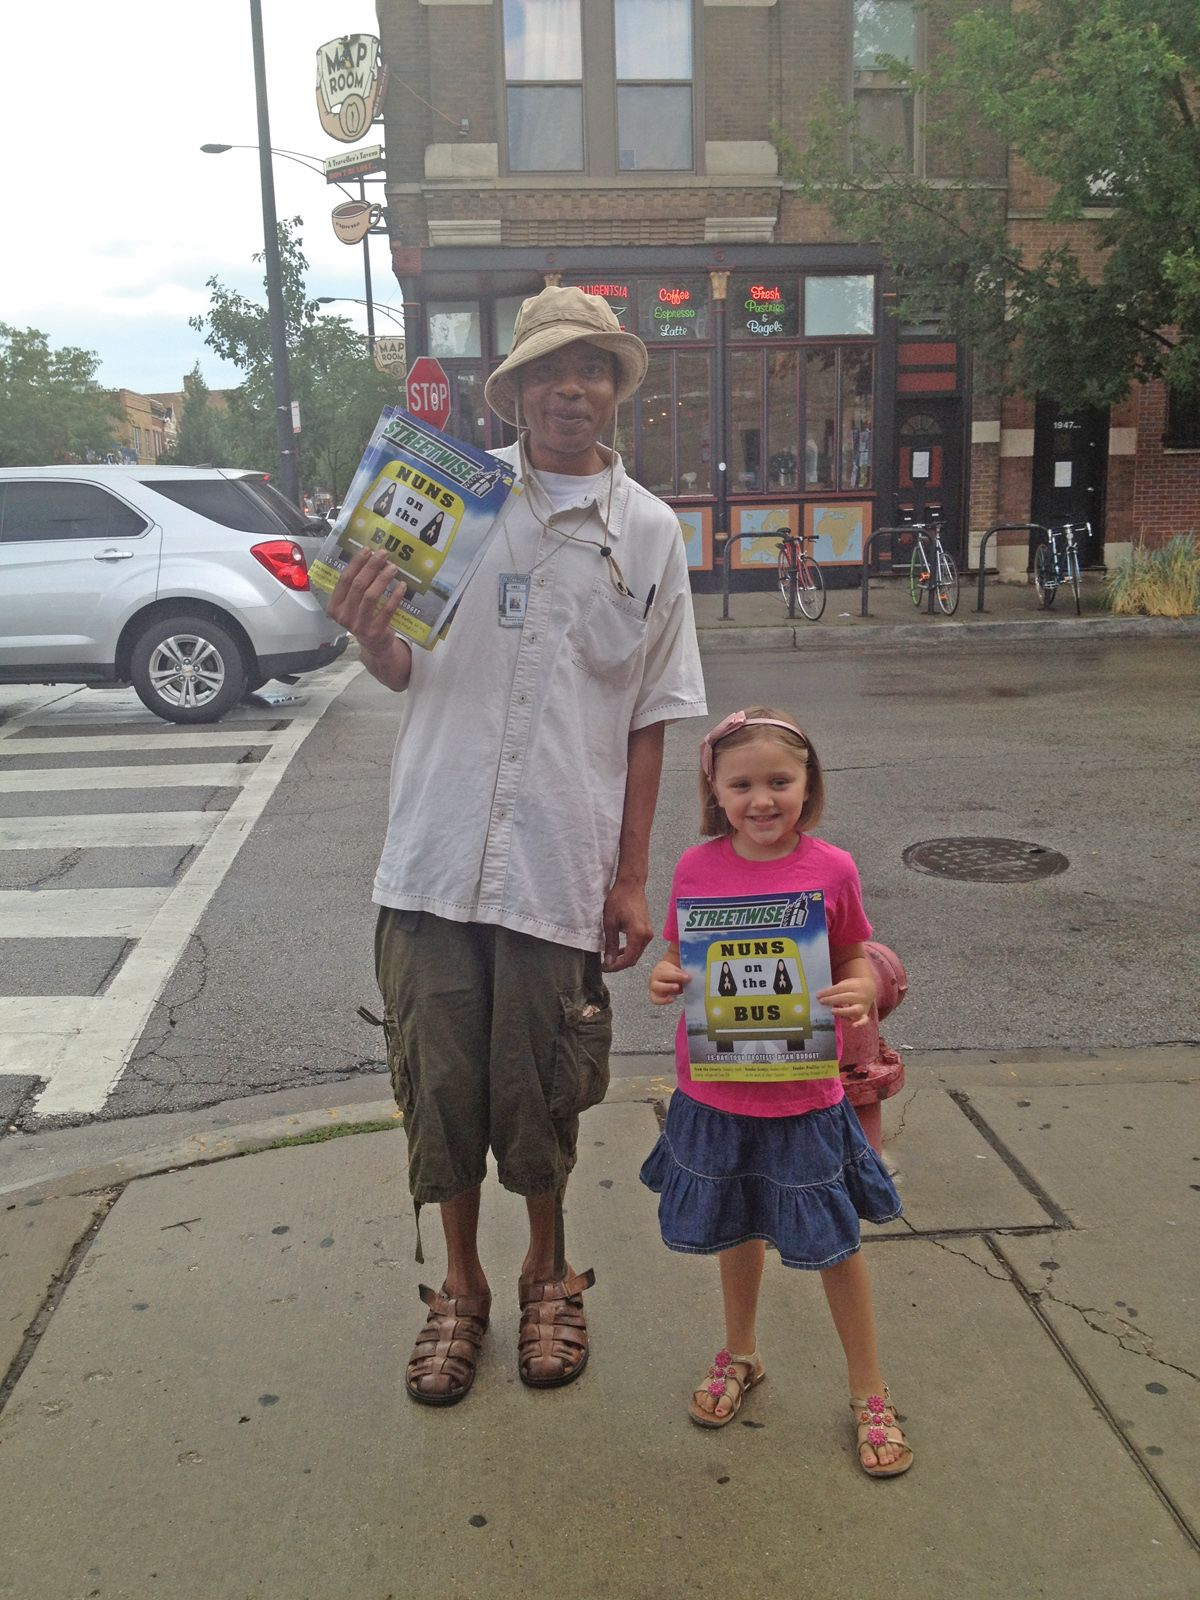 """Theresa Breakiron sent this photo in and wrote, """"No matter what, [my daughter, Bella, and I] both always enjoy the smile on our other favorite StreetWise Vendor and QAT Member Ahmand Mayfield. He is a joy to see and continues to teach my daughter the meaning of hard work, dedication and to be most thankful for the little things in life, like friendship. Thanks, StreetWise."""""""